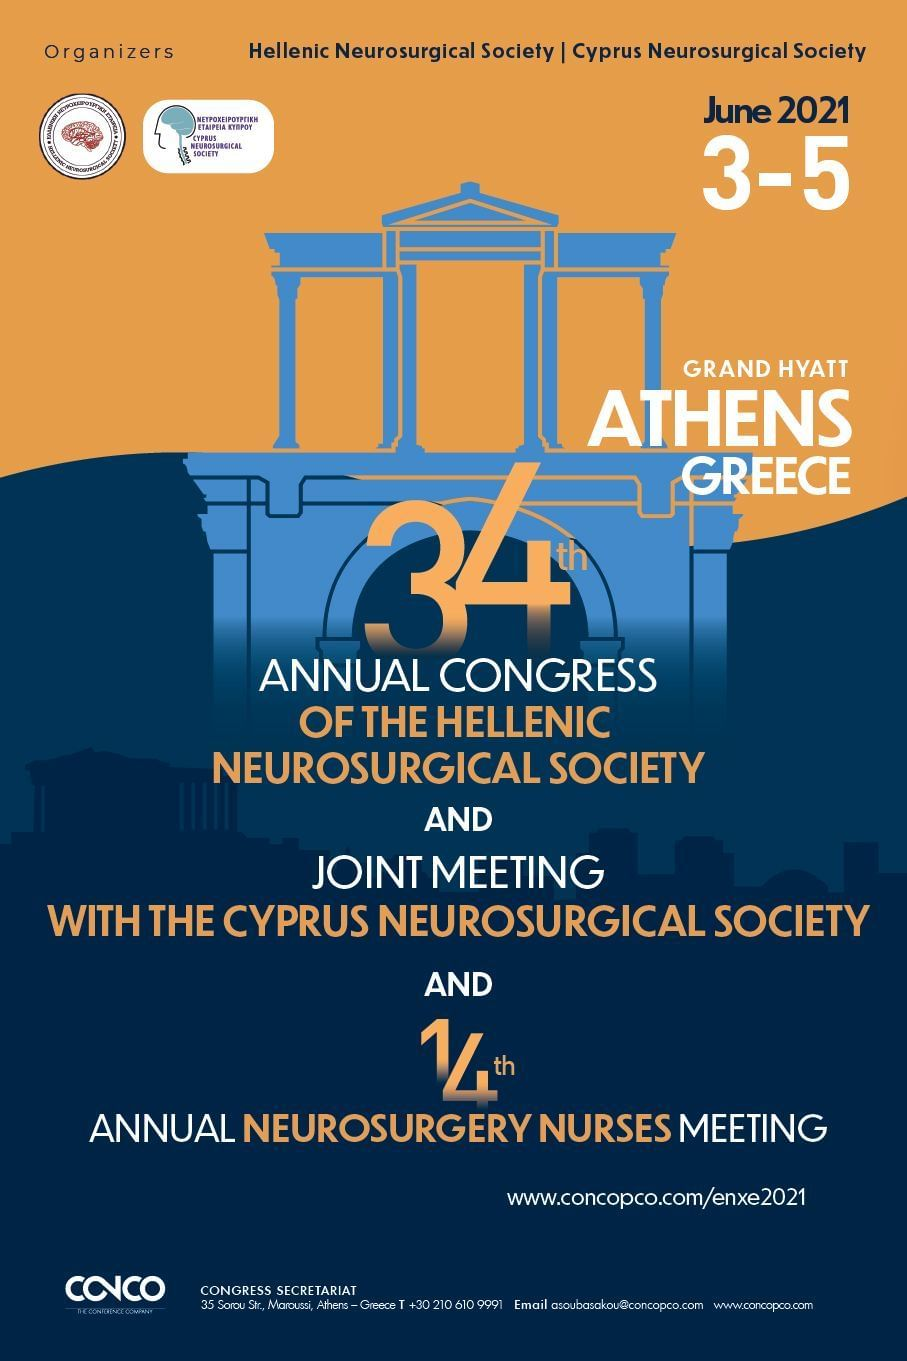 34TH ANNUAL CONGRESS OF THE HELLENIC NEUROSURGICAL SOCIETY AND JOINT MEETING WITH THE CYPRUS NEUROSURGICAL SOCIETY AND 14TH ANNUAL NEUROSURGERY NURSES MEETING